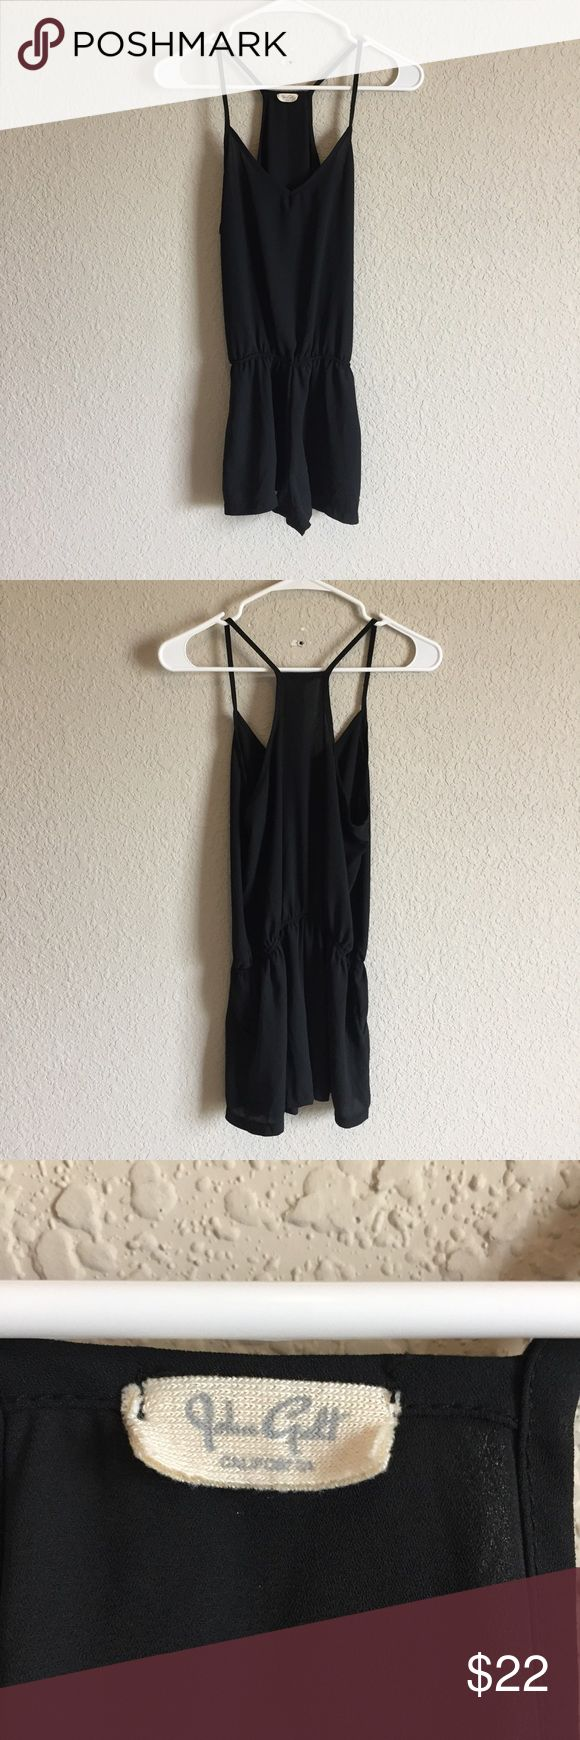 Brandy Melville Romper (61) Cute semi sheer black romper with pockets and elastic waistband. No flaws. Tagged as One Size. Bust- 16.5 inches Waist- 11.5 inches Length- 30 inches Brandy Melville Pants Jumpsuits & Rompers